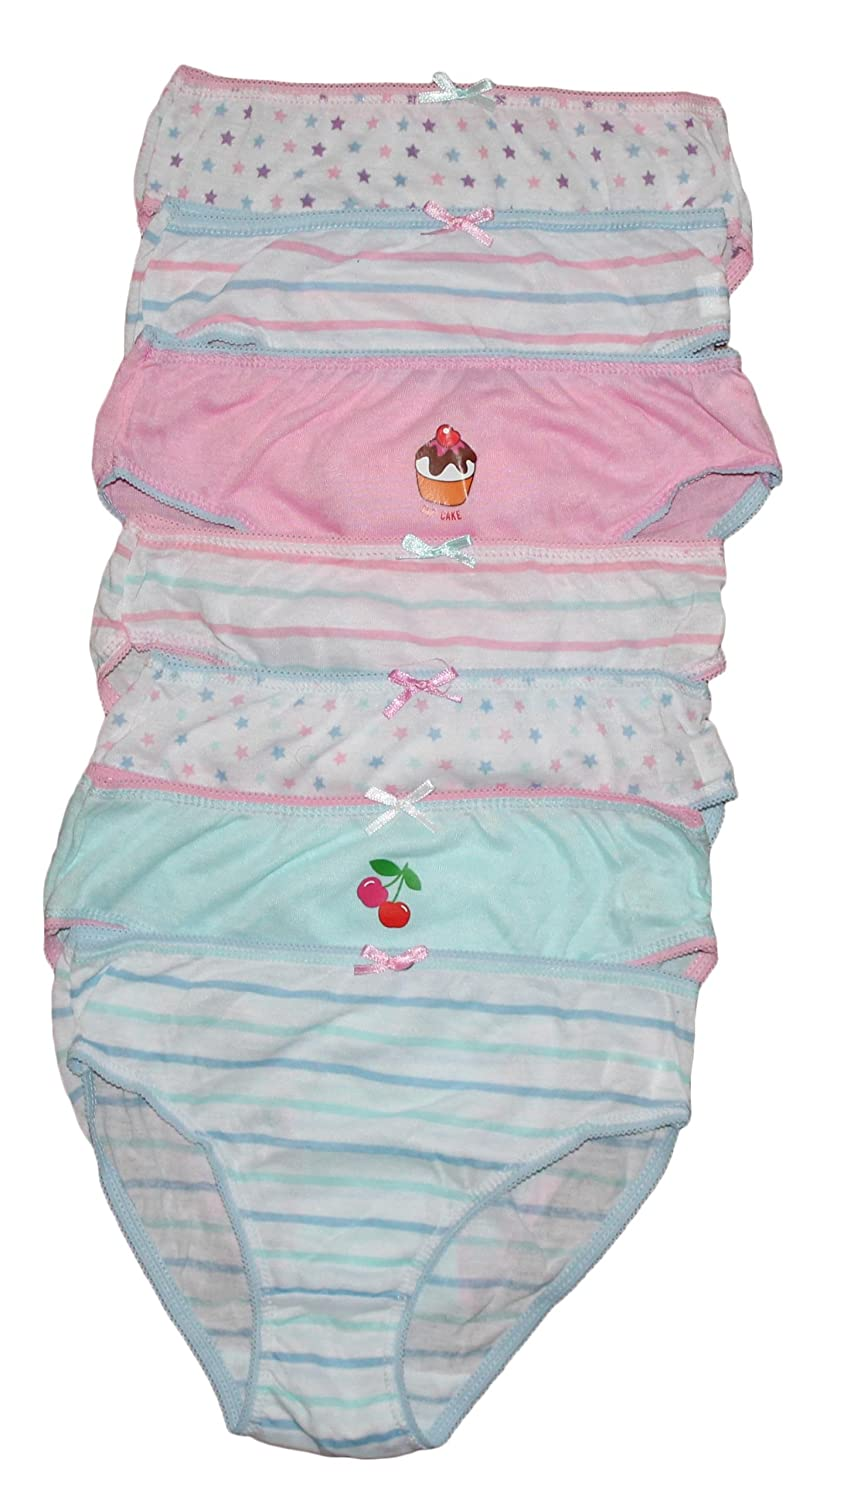 49ba1163d Childrens 7 Pack Girls Knickers Briefs  Amazon.co.uk  Clothing